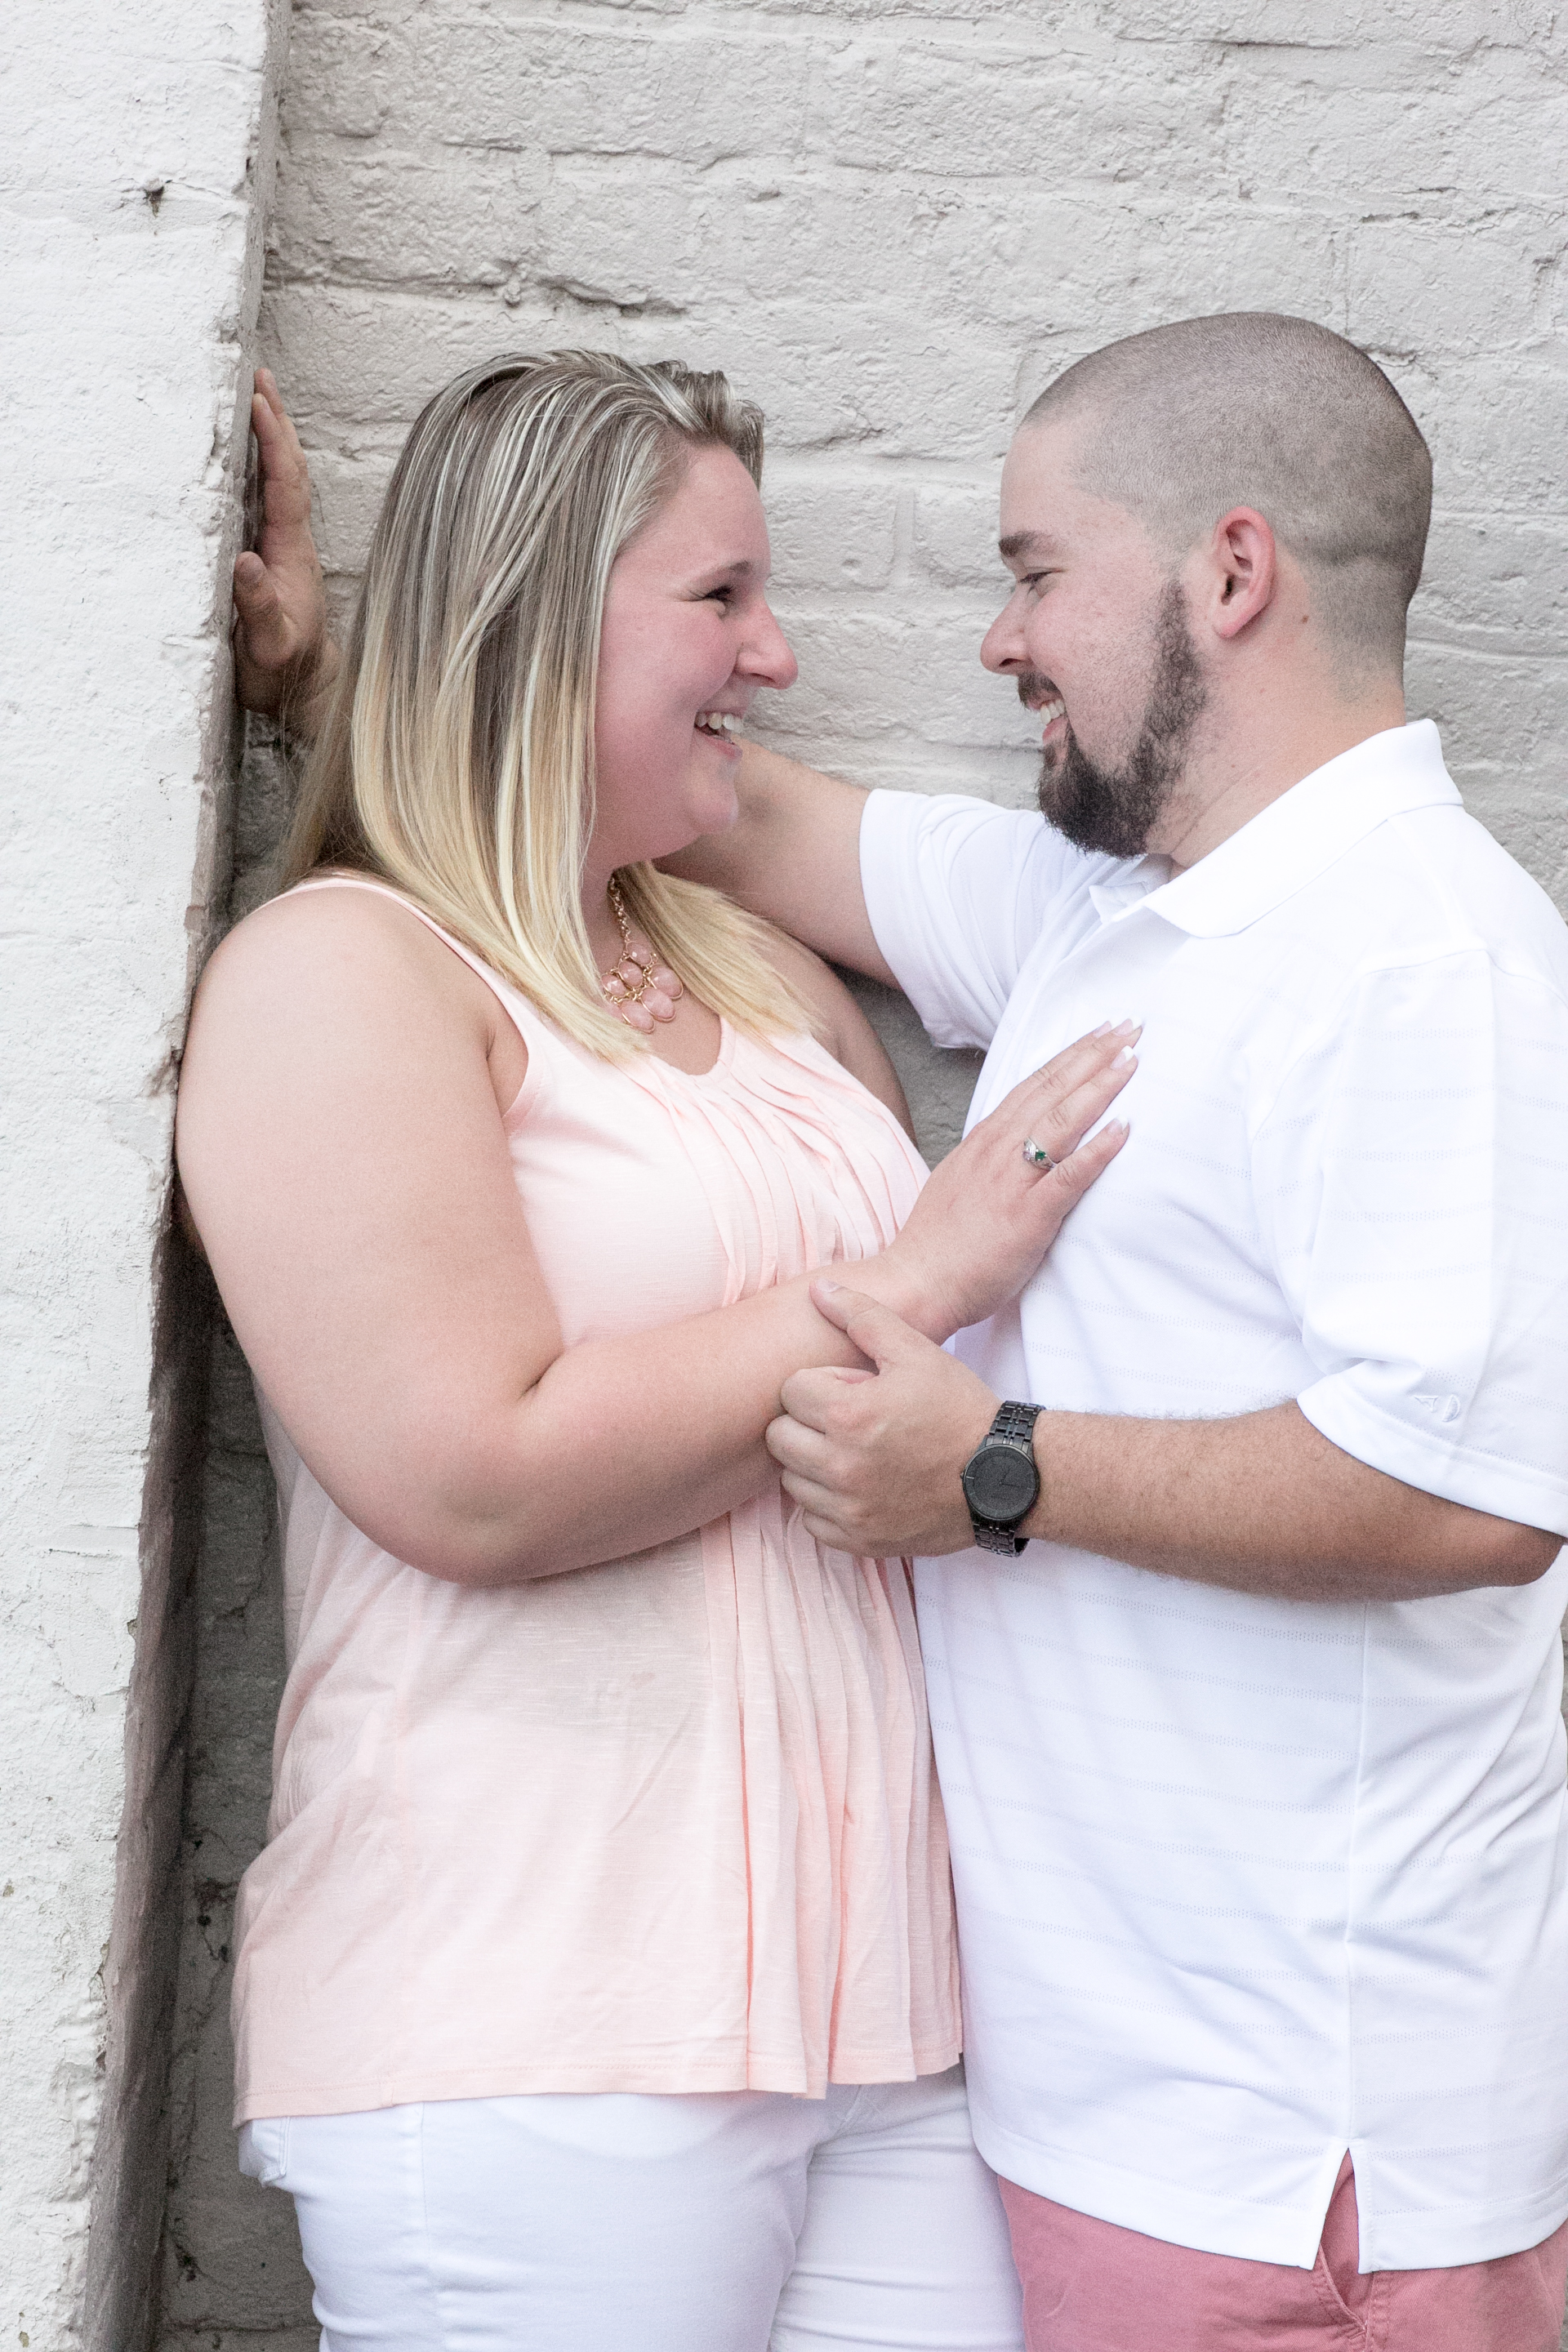 downtown fredericksburg virginia engagement session heather michelle photography dog (1 of 1)-6